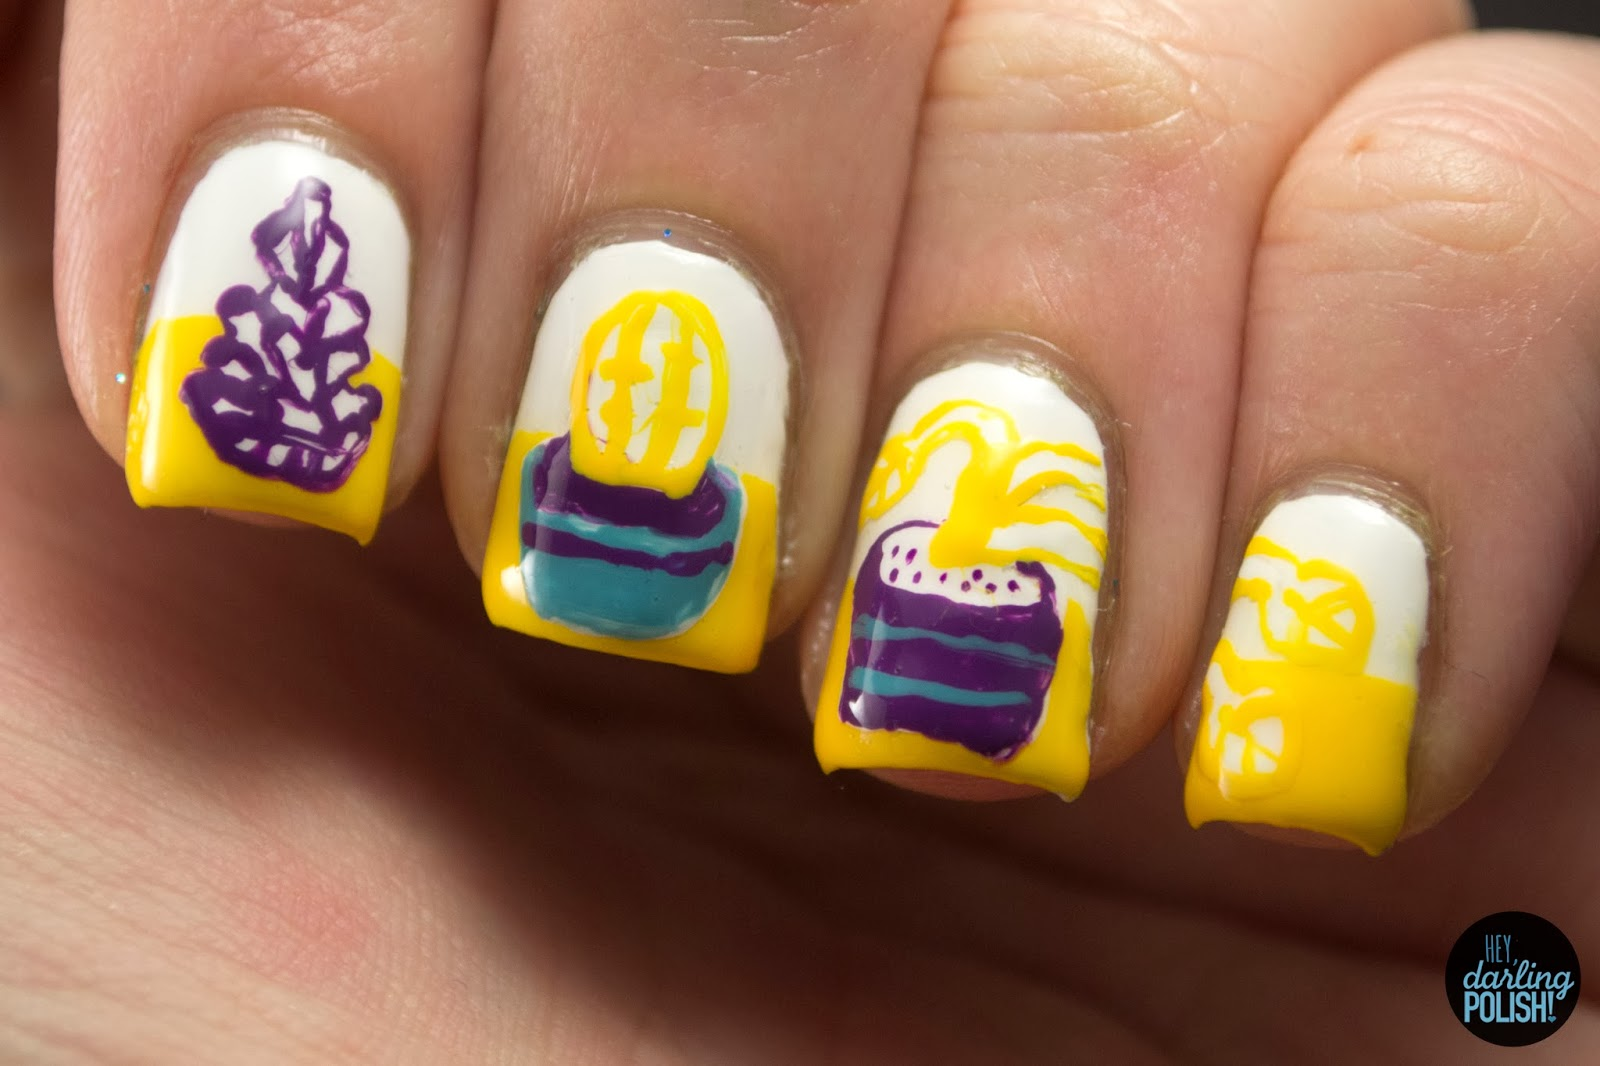 nails, nail art, nail polish, polish, still life, nail art a go go, yellow, purple, blue, hey darling polish, art 101